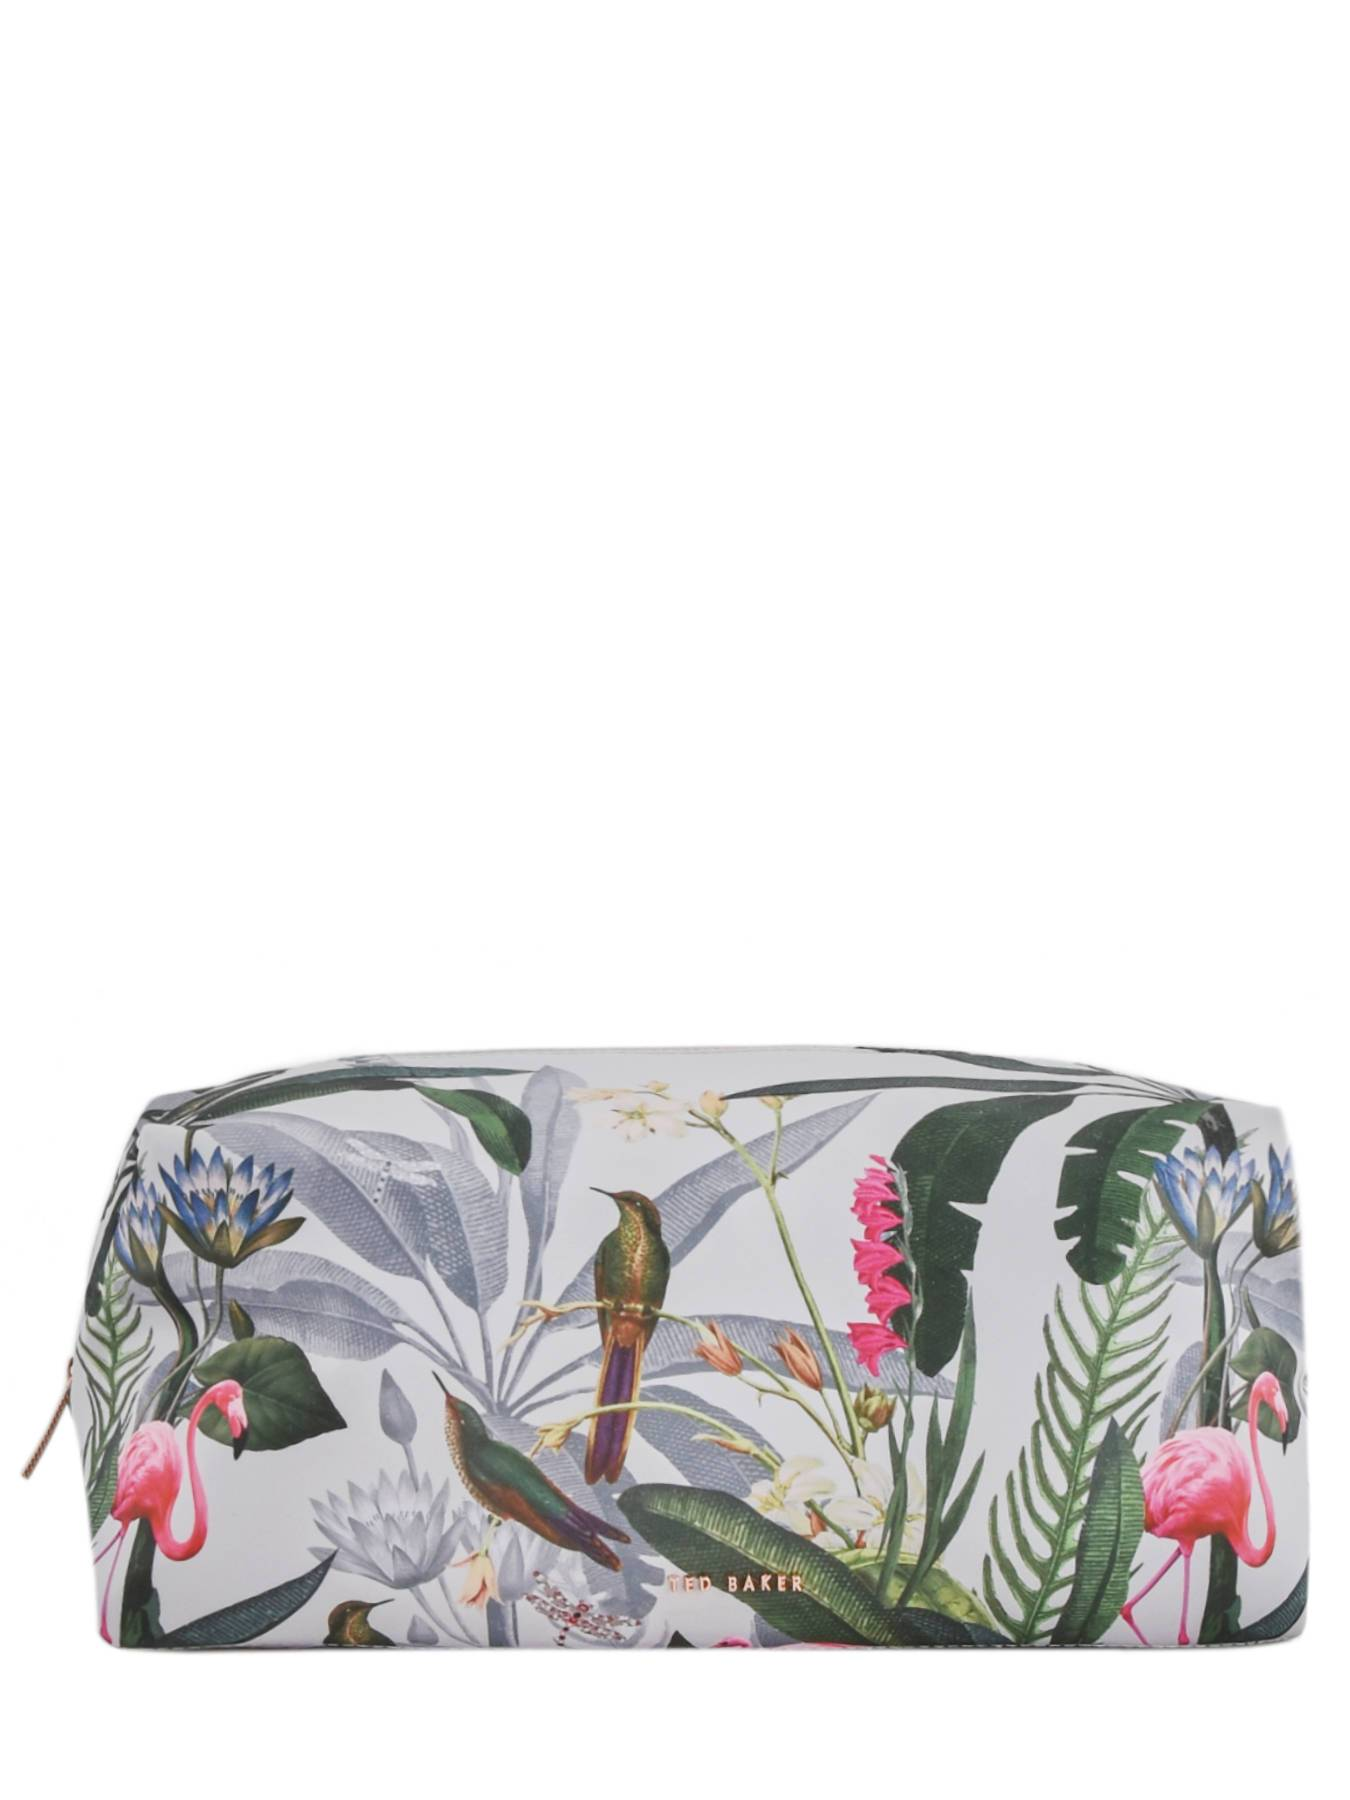 TED BAKER Trousse Cosmétique Iconic Ted Baker Gris